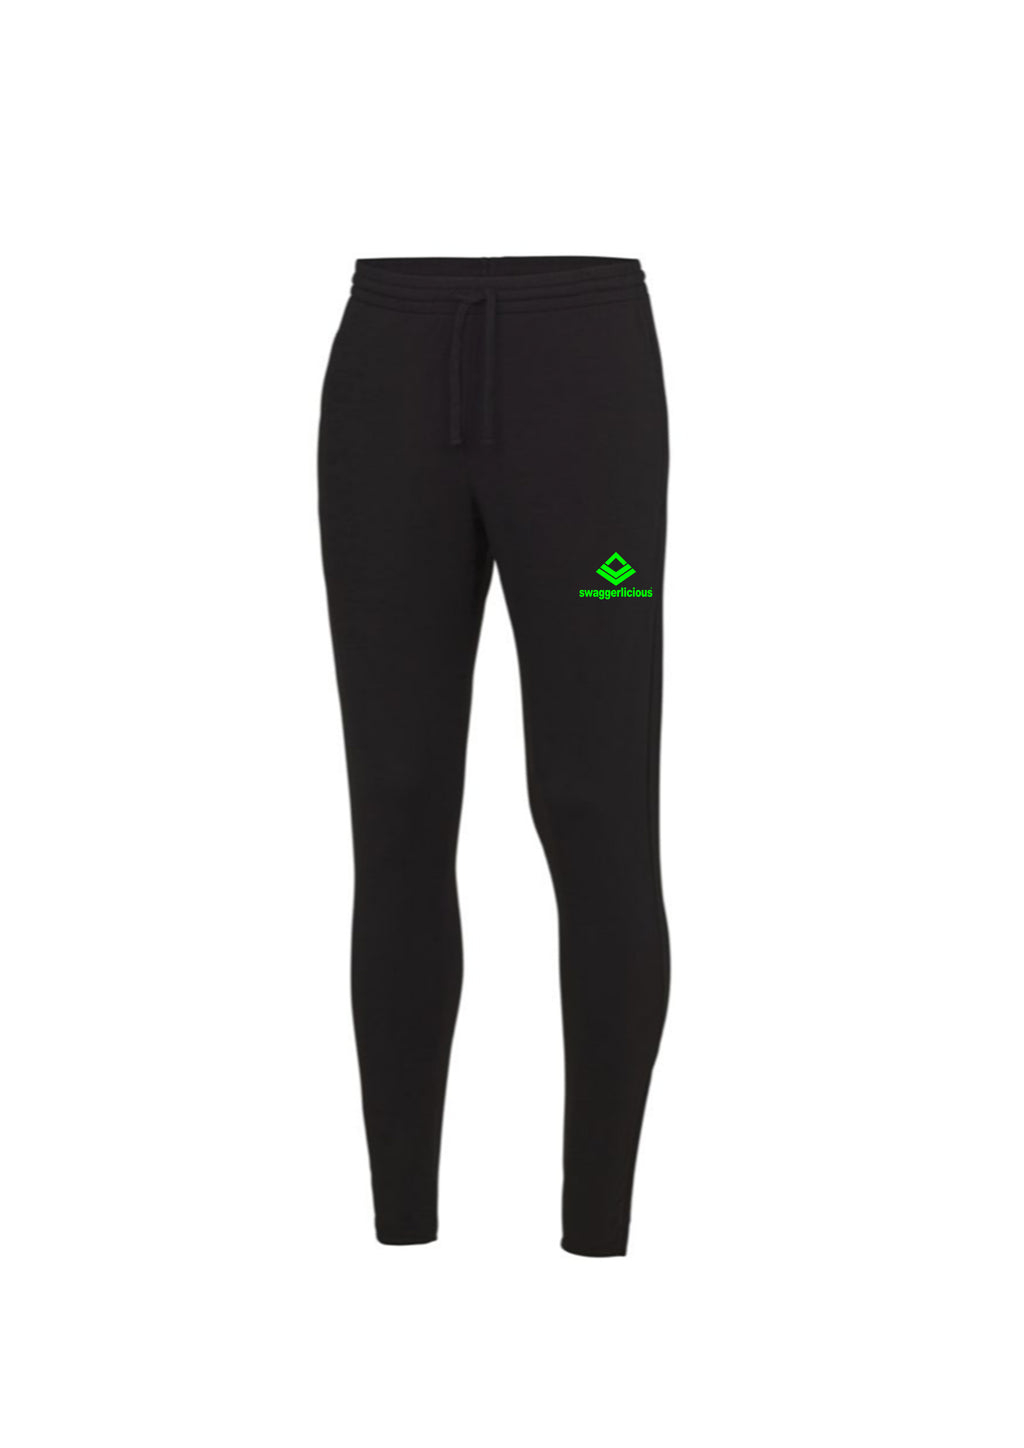 Swaggerlicious Cool Jet Black Jogging Pants with Green Logo